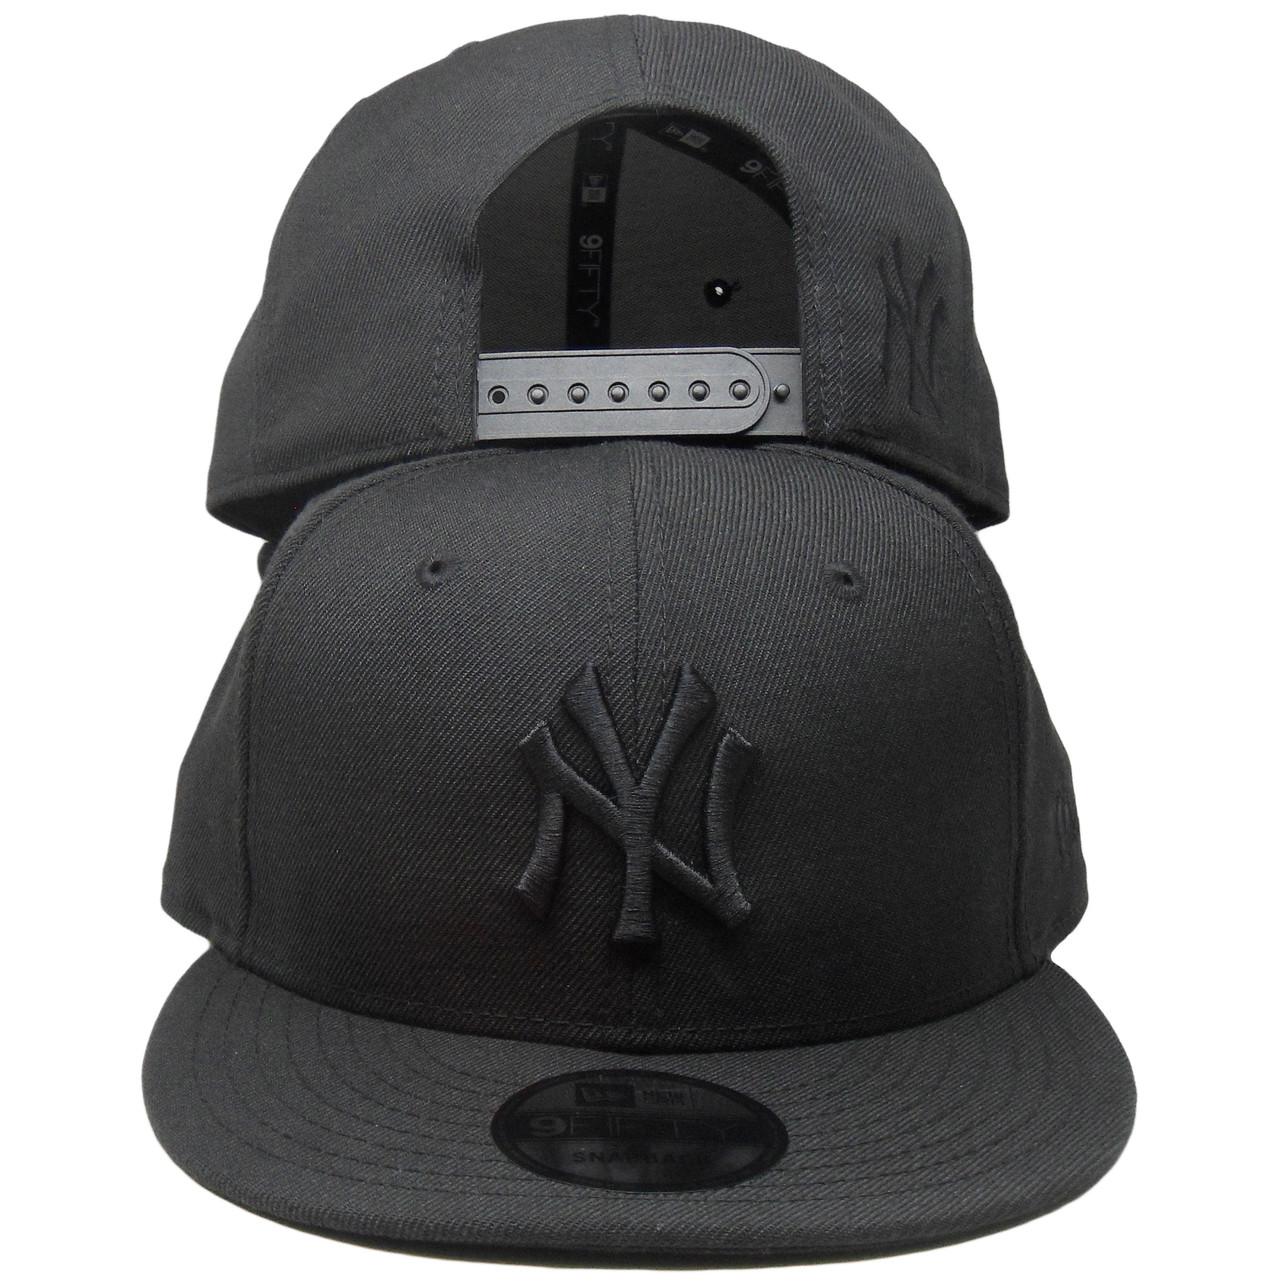 6c1607f12f8 ... norway new york yankees new era custom 9fifty snapback hat black tonal  b9d3b 0a5ab